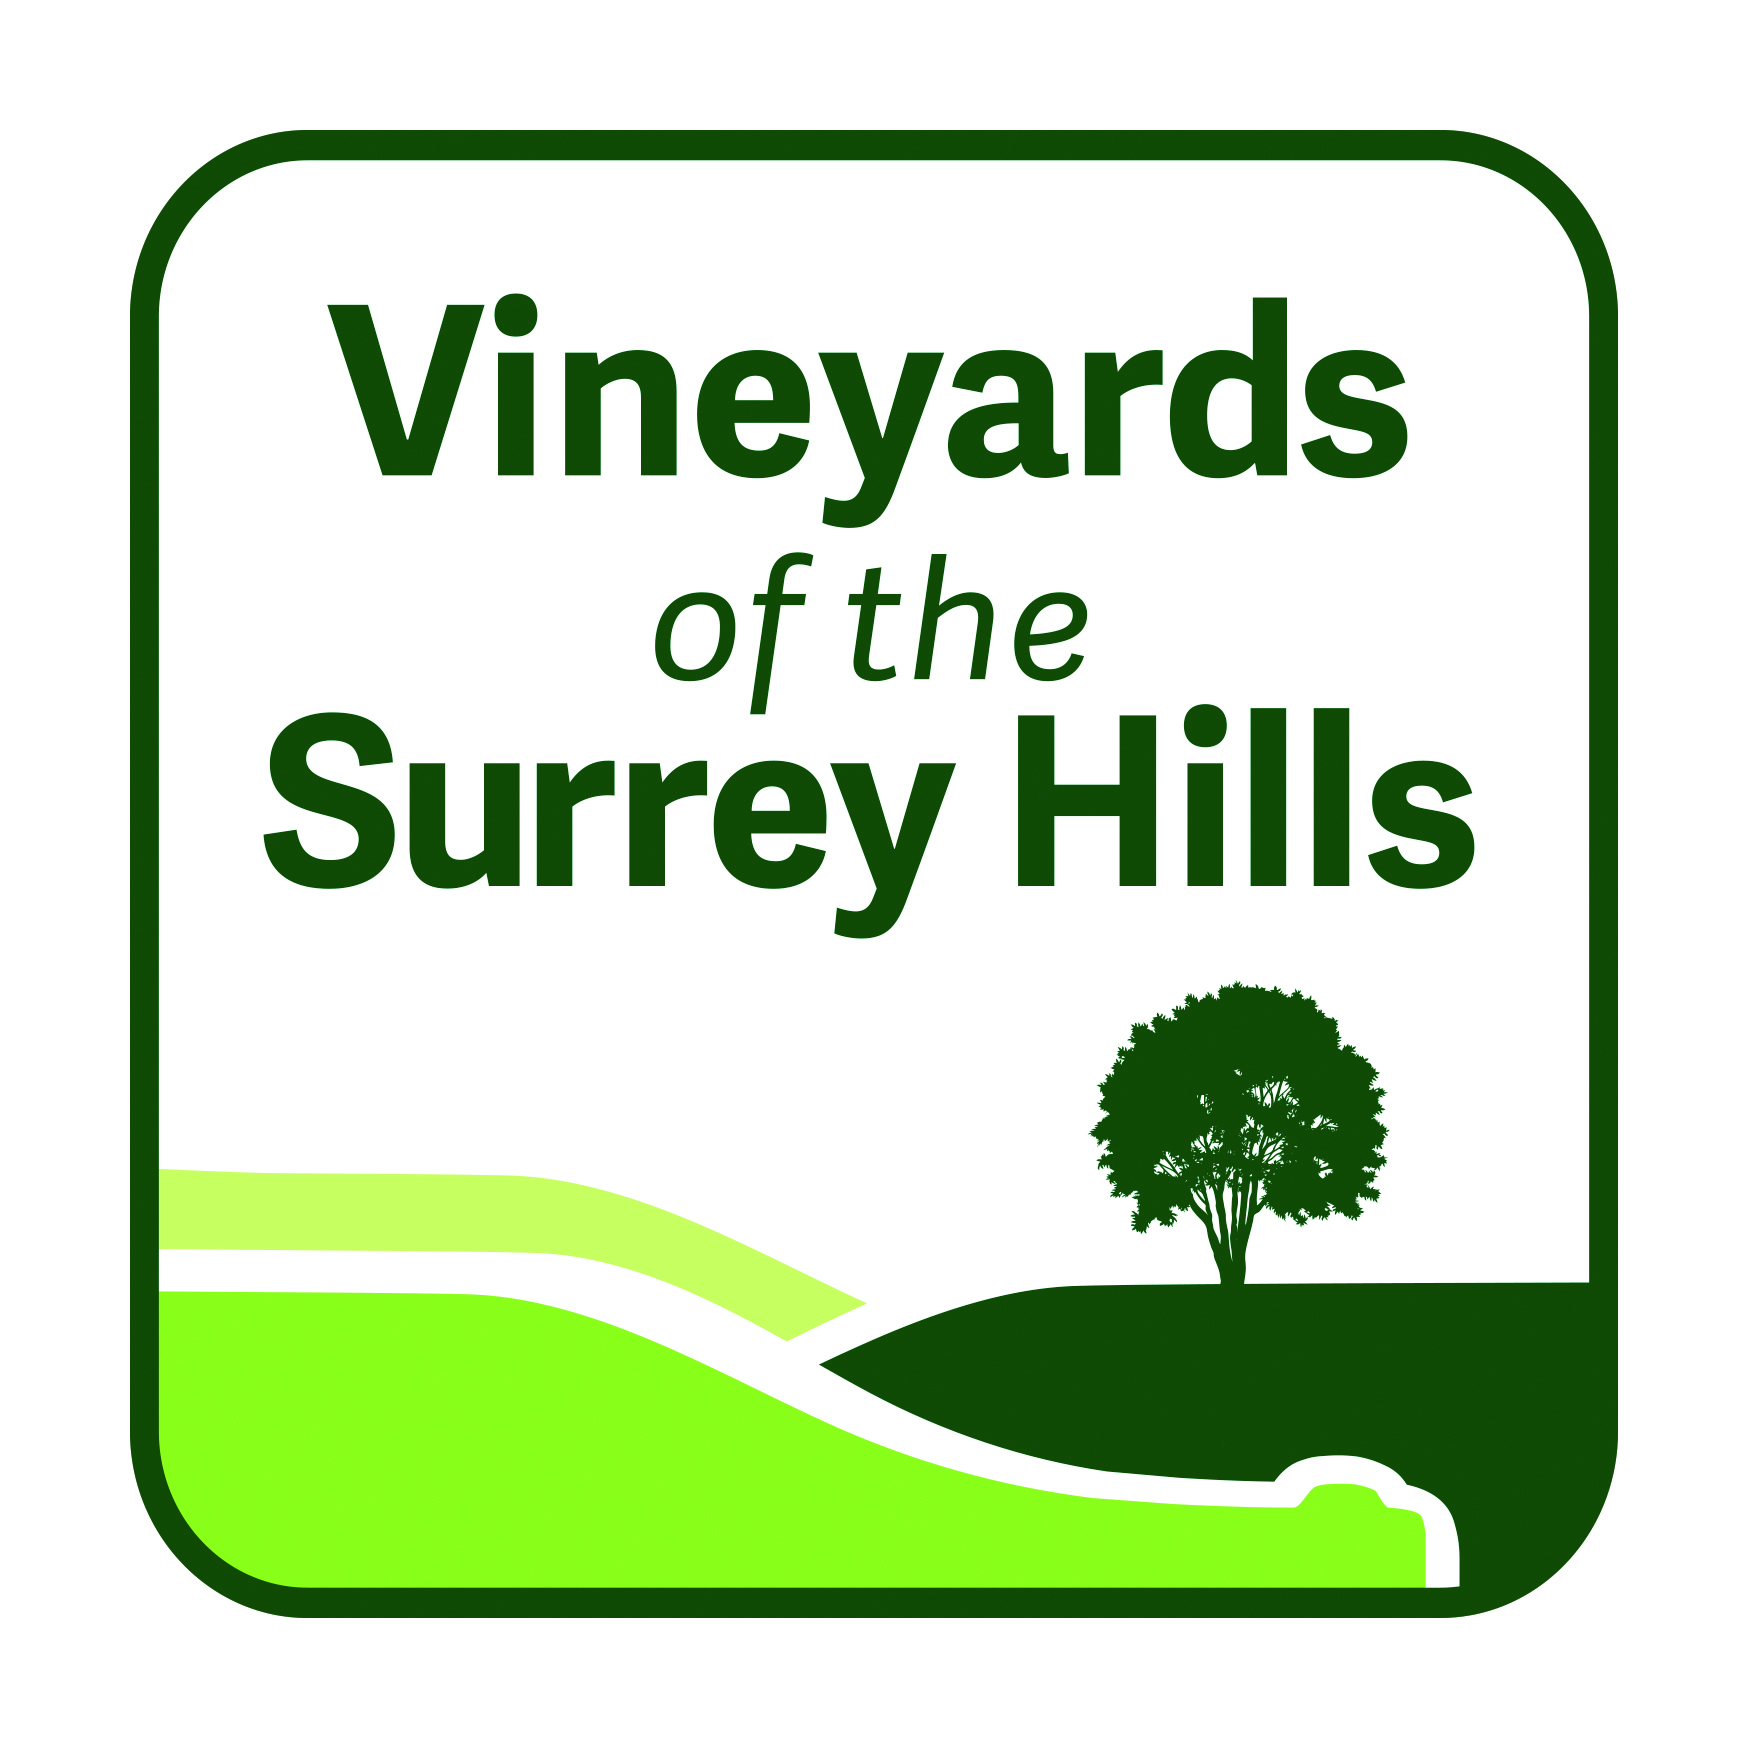 A guide to the Vineyards of the Surrey Hills